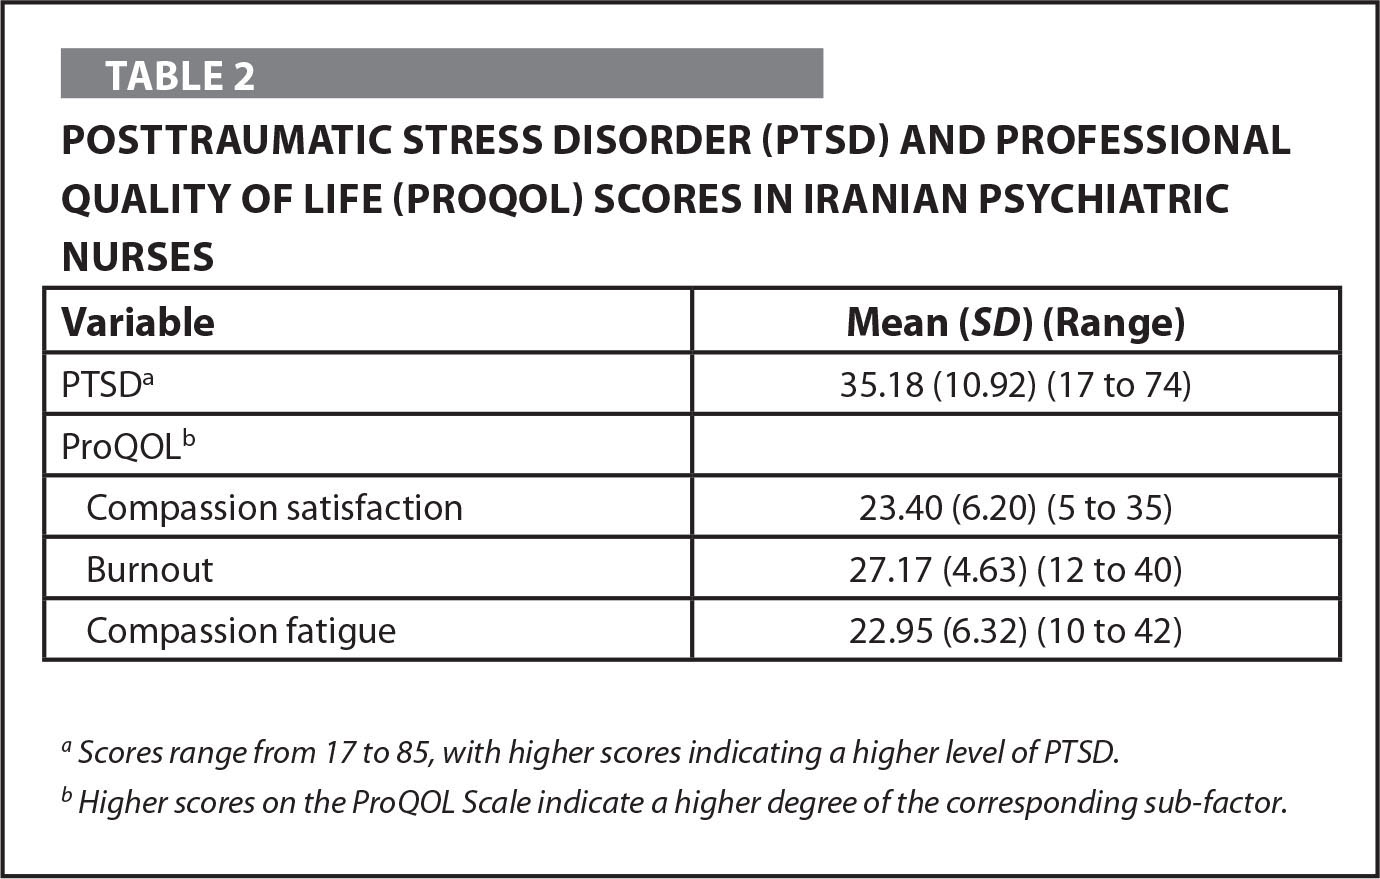 Posttraumatic Stress Disorder (PTSD) and Professional Quality of Life (PROQOL) Scores in Iranian Psychiatric Nurses